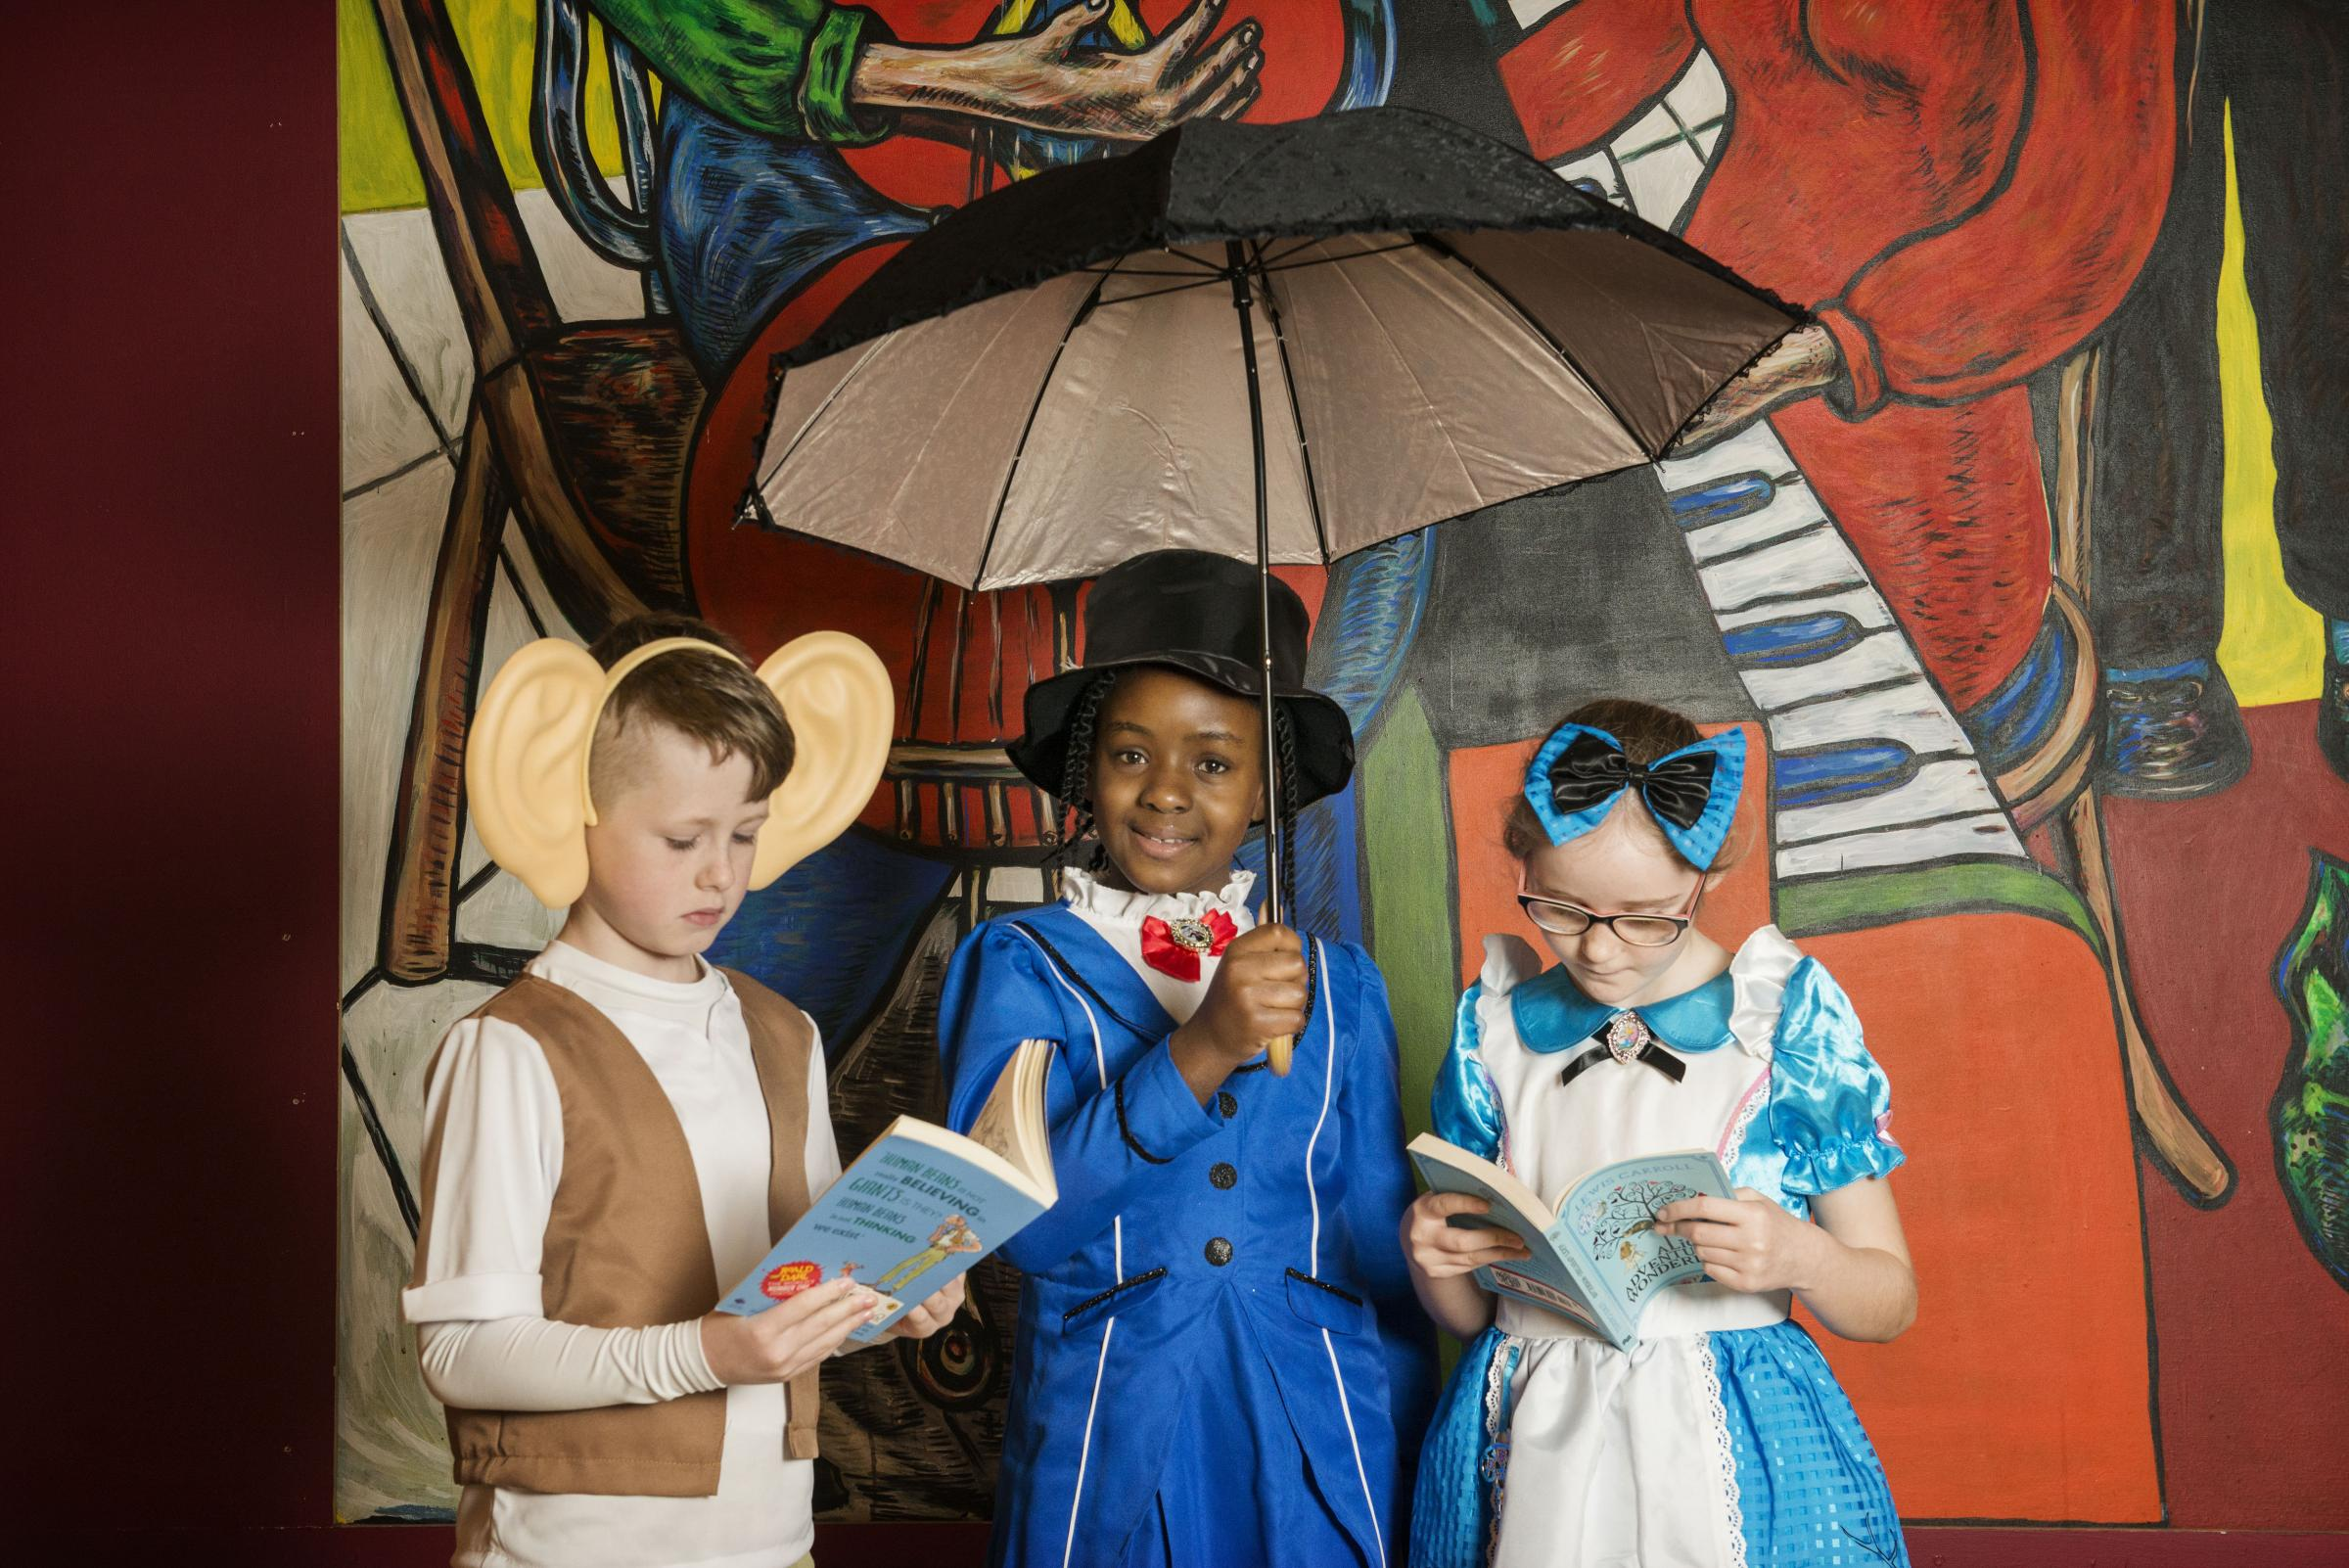 School pupils from Saint Rose of Lima take part in the Biggest Book Show on Earth at the Glasgow Royal Concert Hall. 27/02/2017.The Biggest Book Show on Earth is organised by World Book Day UK as part of the annual celebration of books and reading. This y